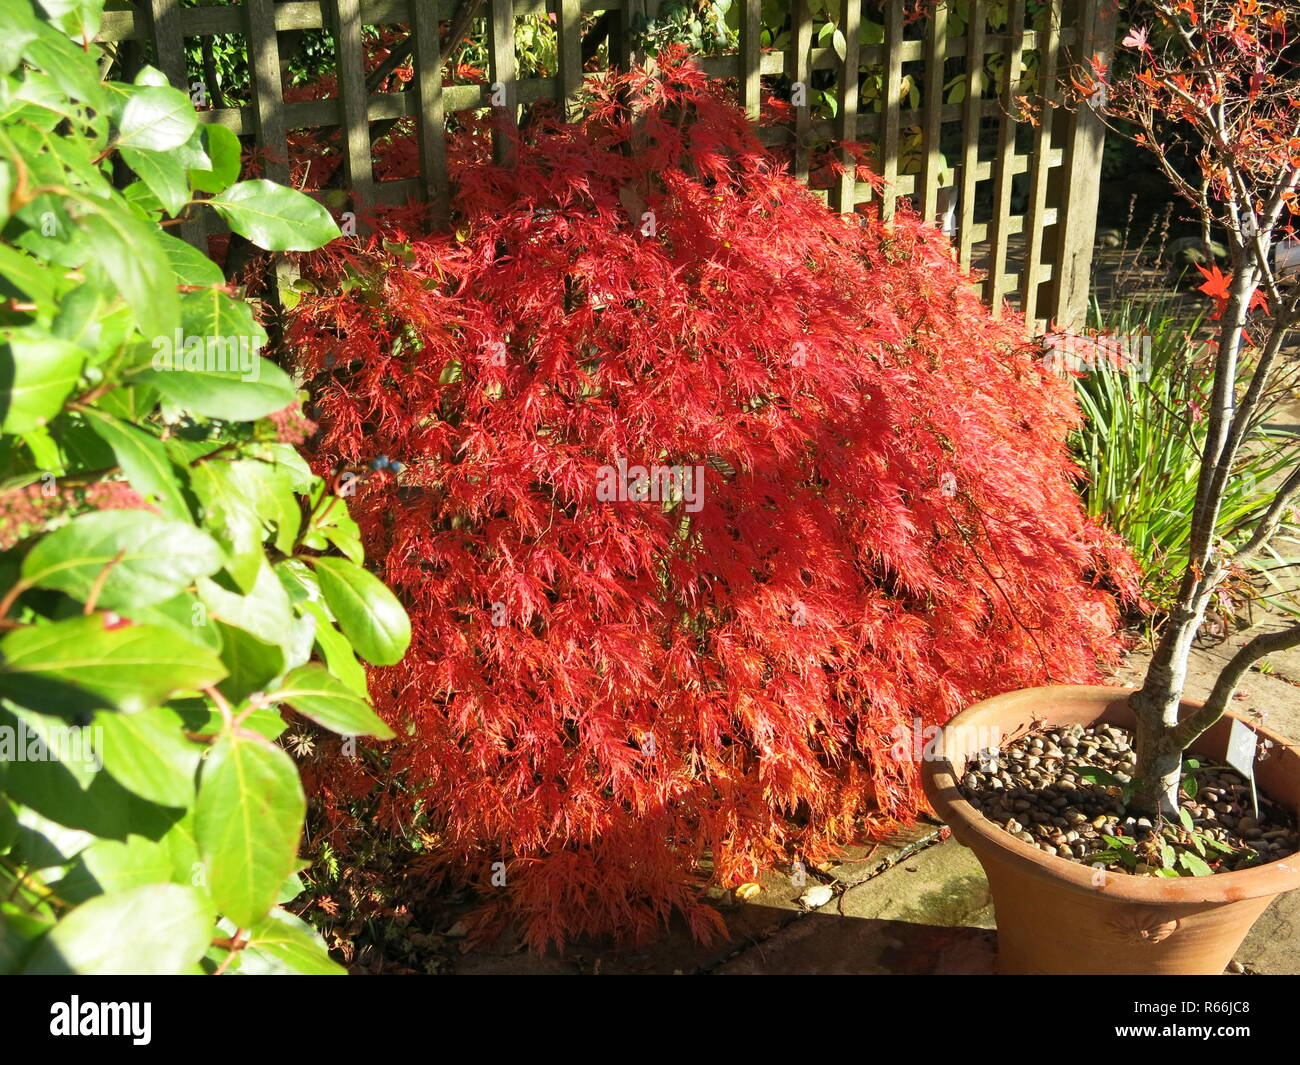 A glorious red acer shining in the autumn sunshine against the fence, in an English garden, November 2018 - Stock Image